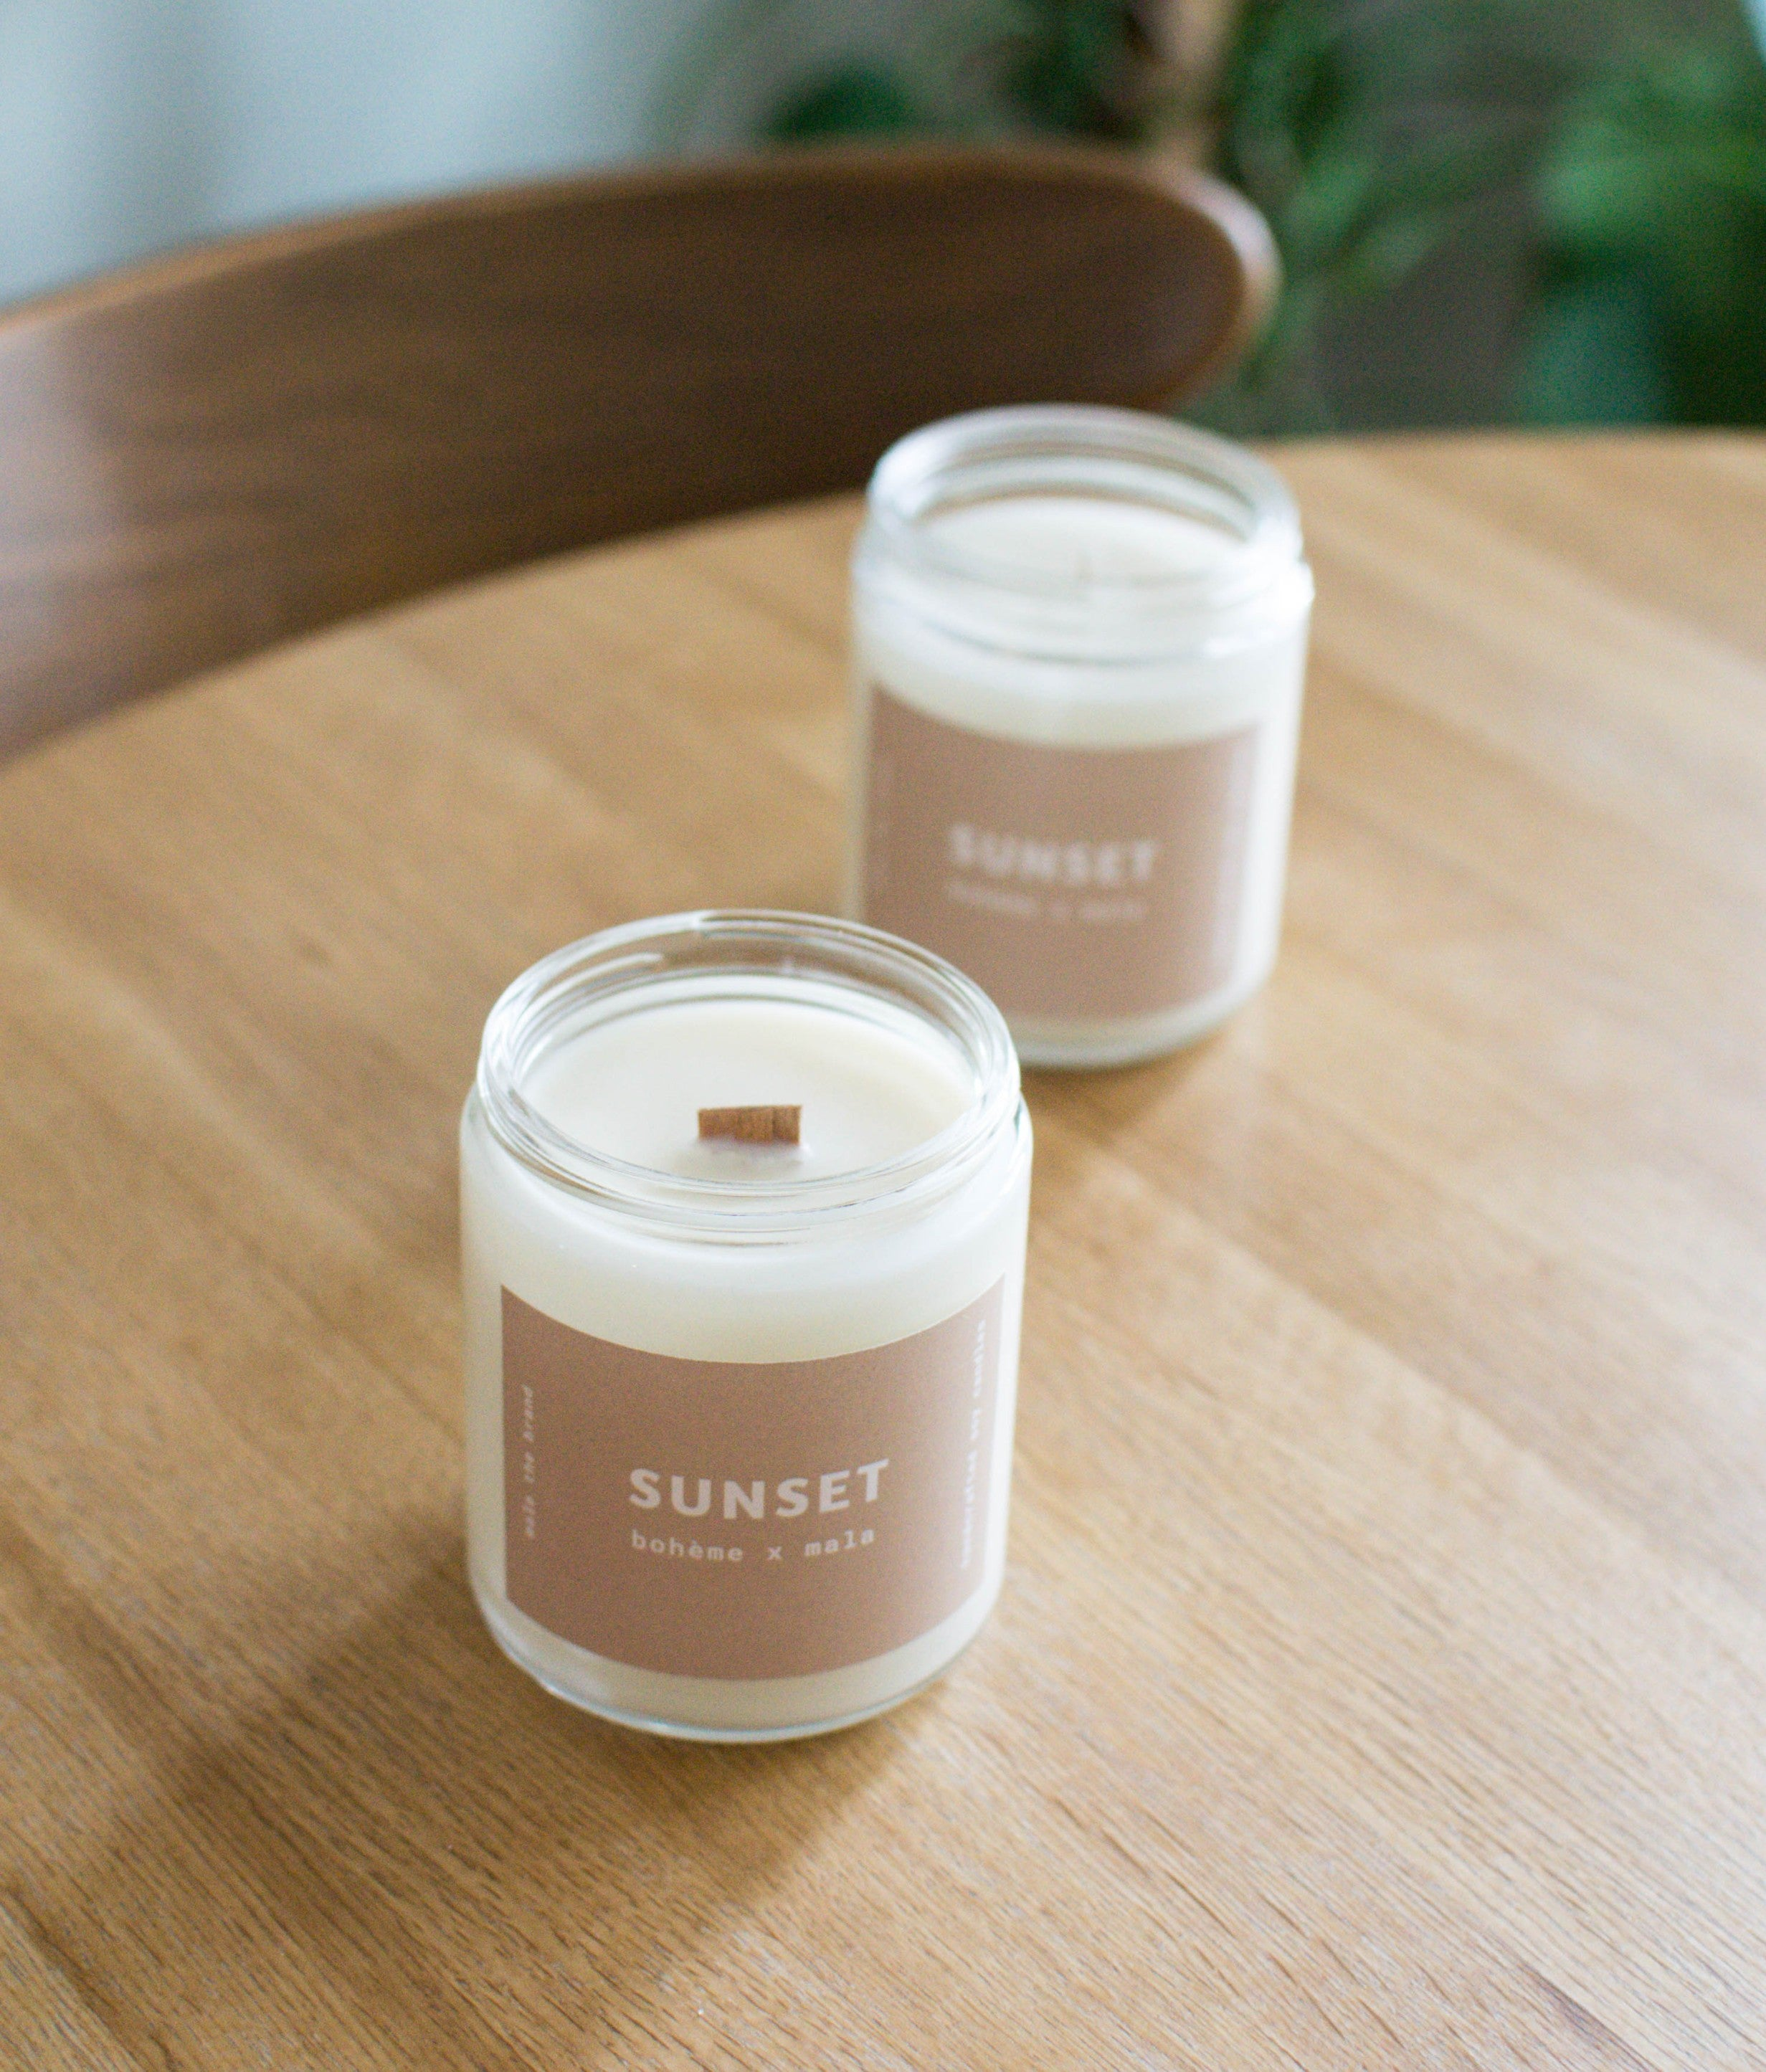 Sunset by Bohème Goods